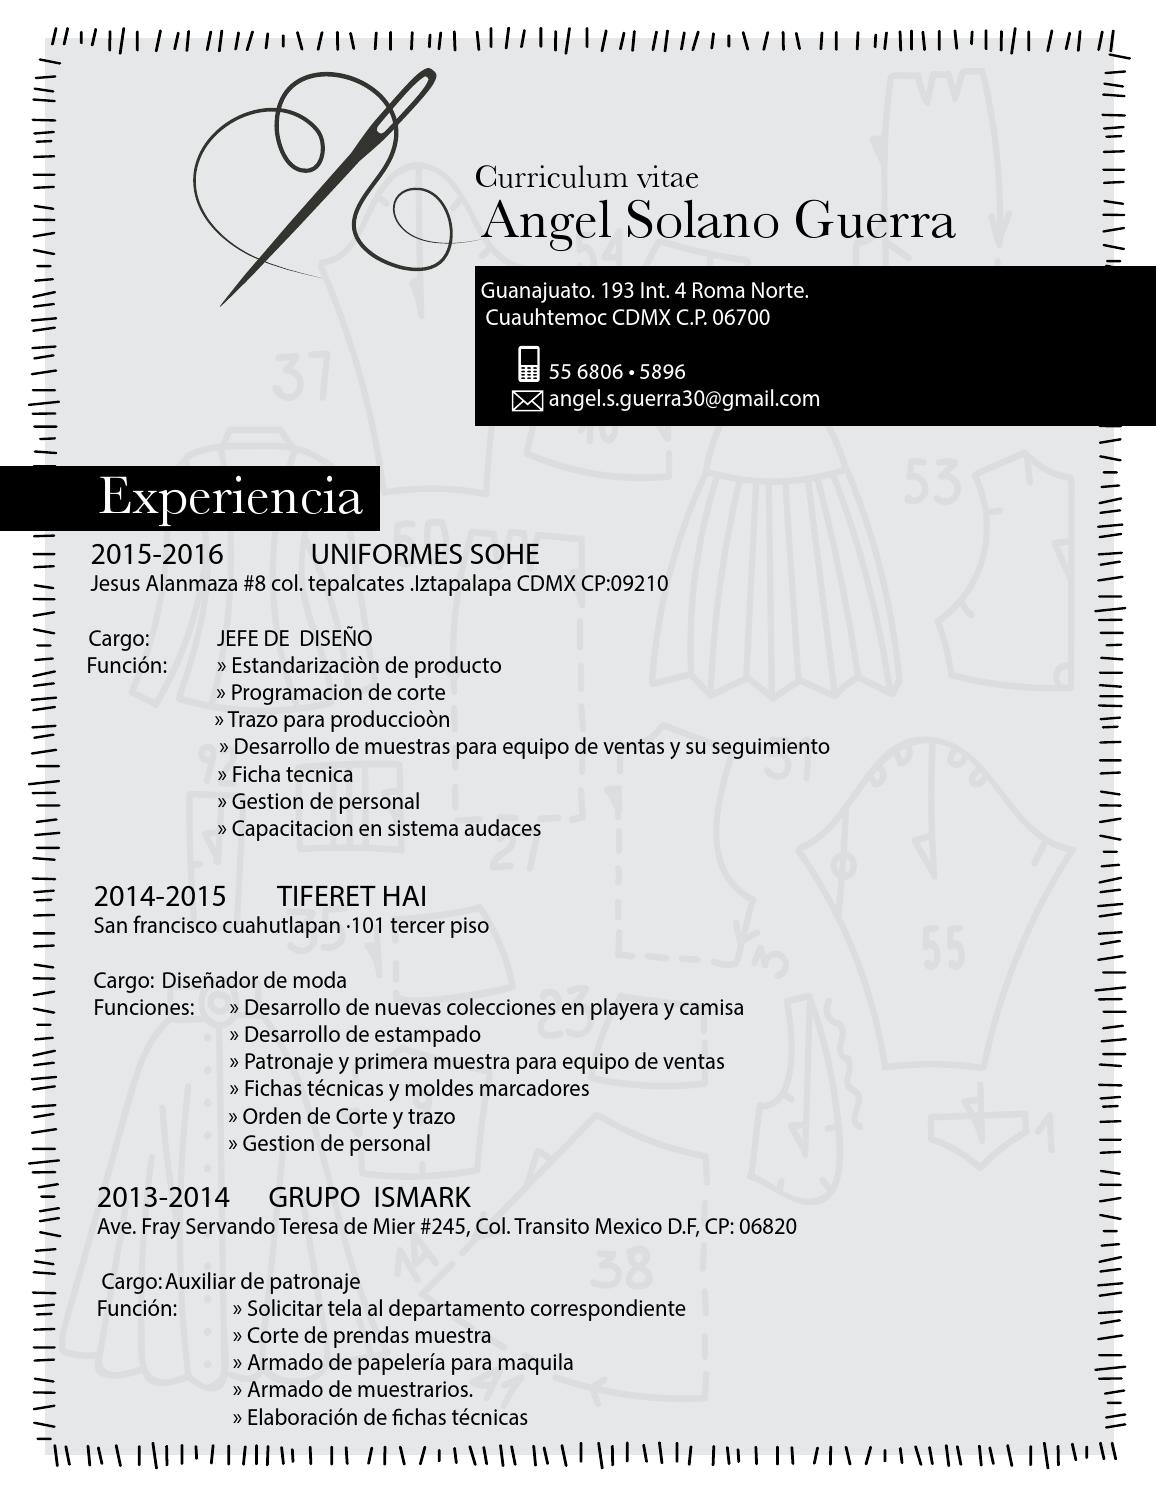 Angel solano curriculum vitae by Angel Guerra - issuu